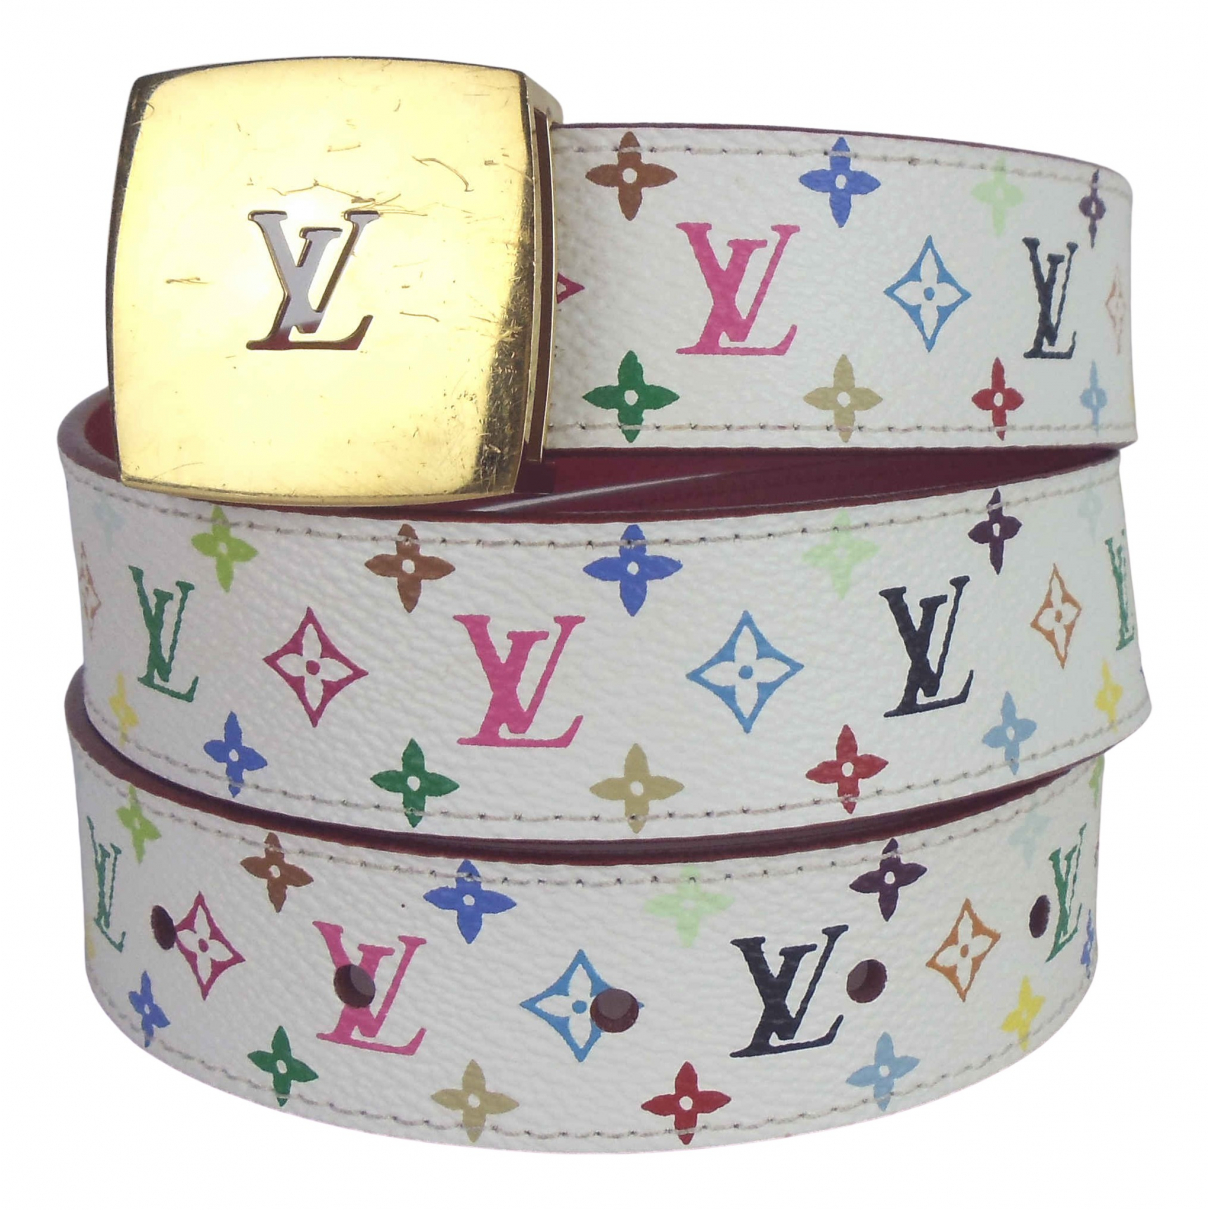 Louis Vuitton \N Multicolour Leather belt for Women 80 cm